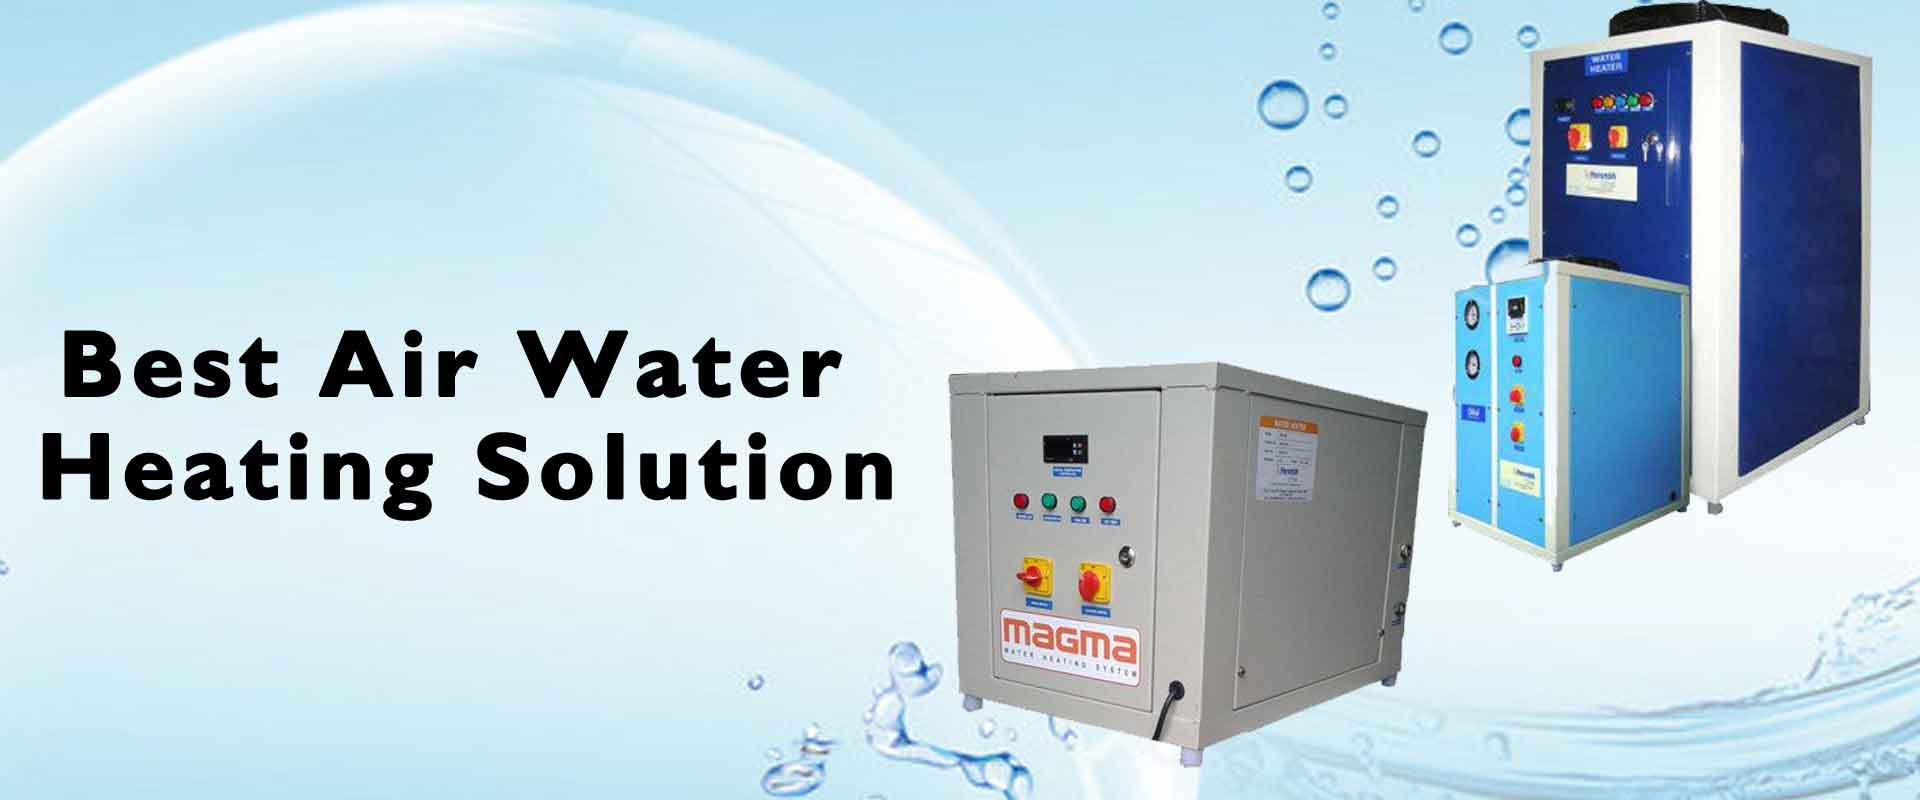 Best Air Water Heating Solution